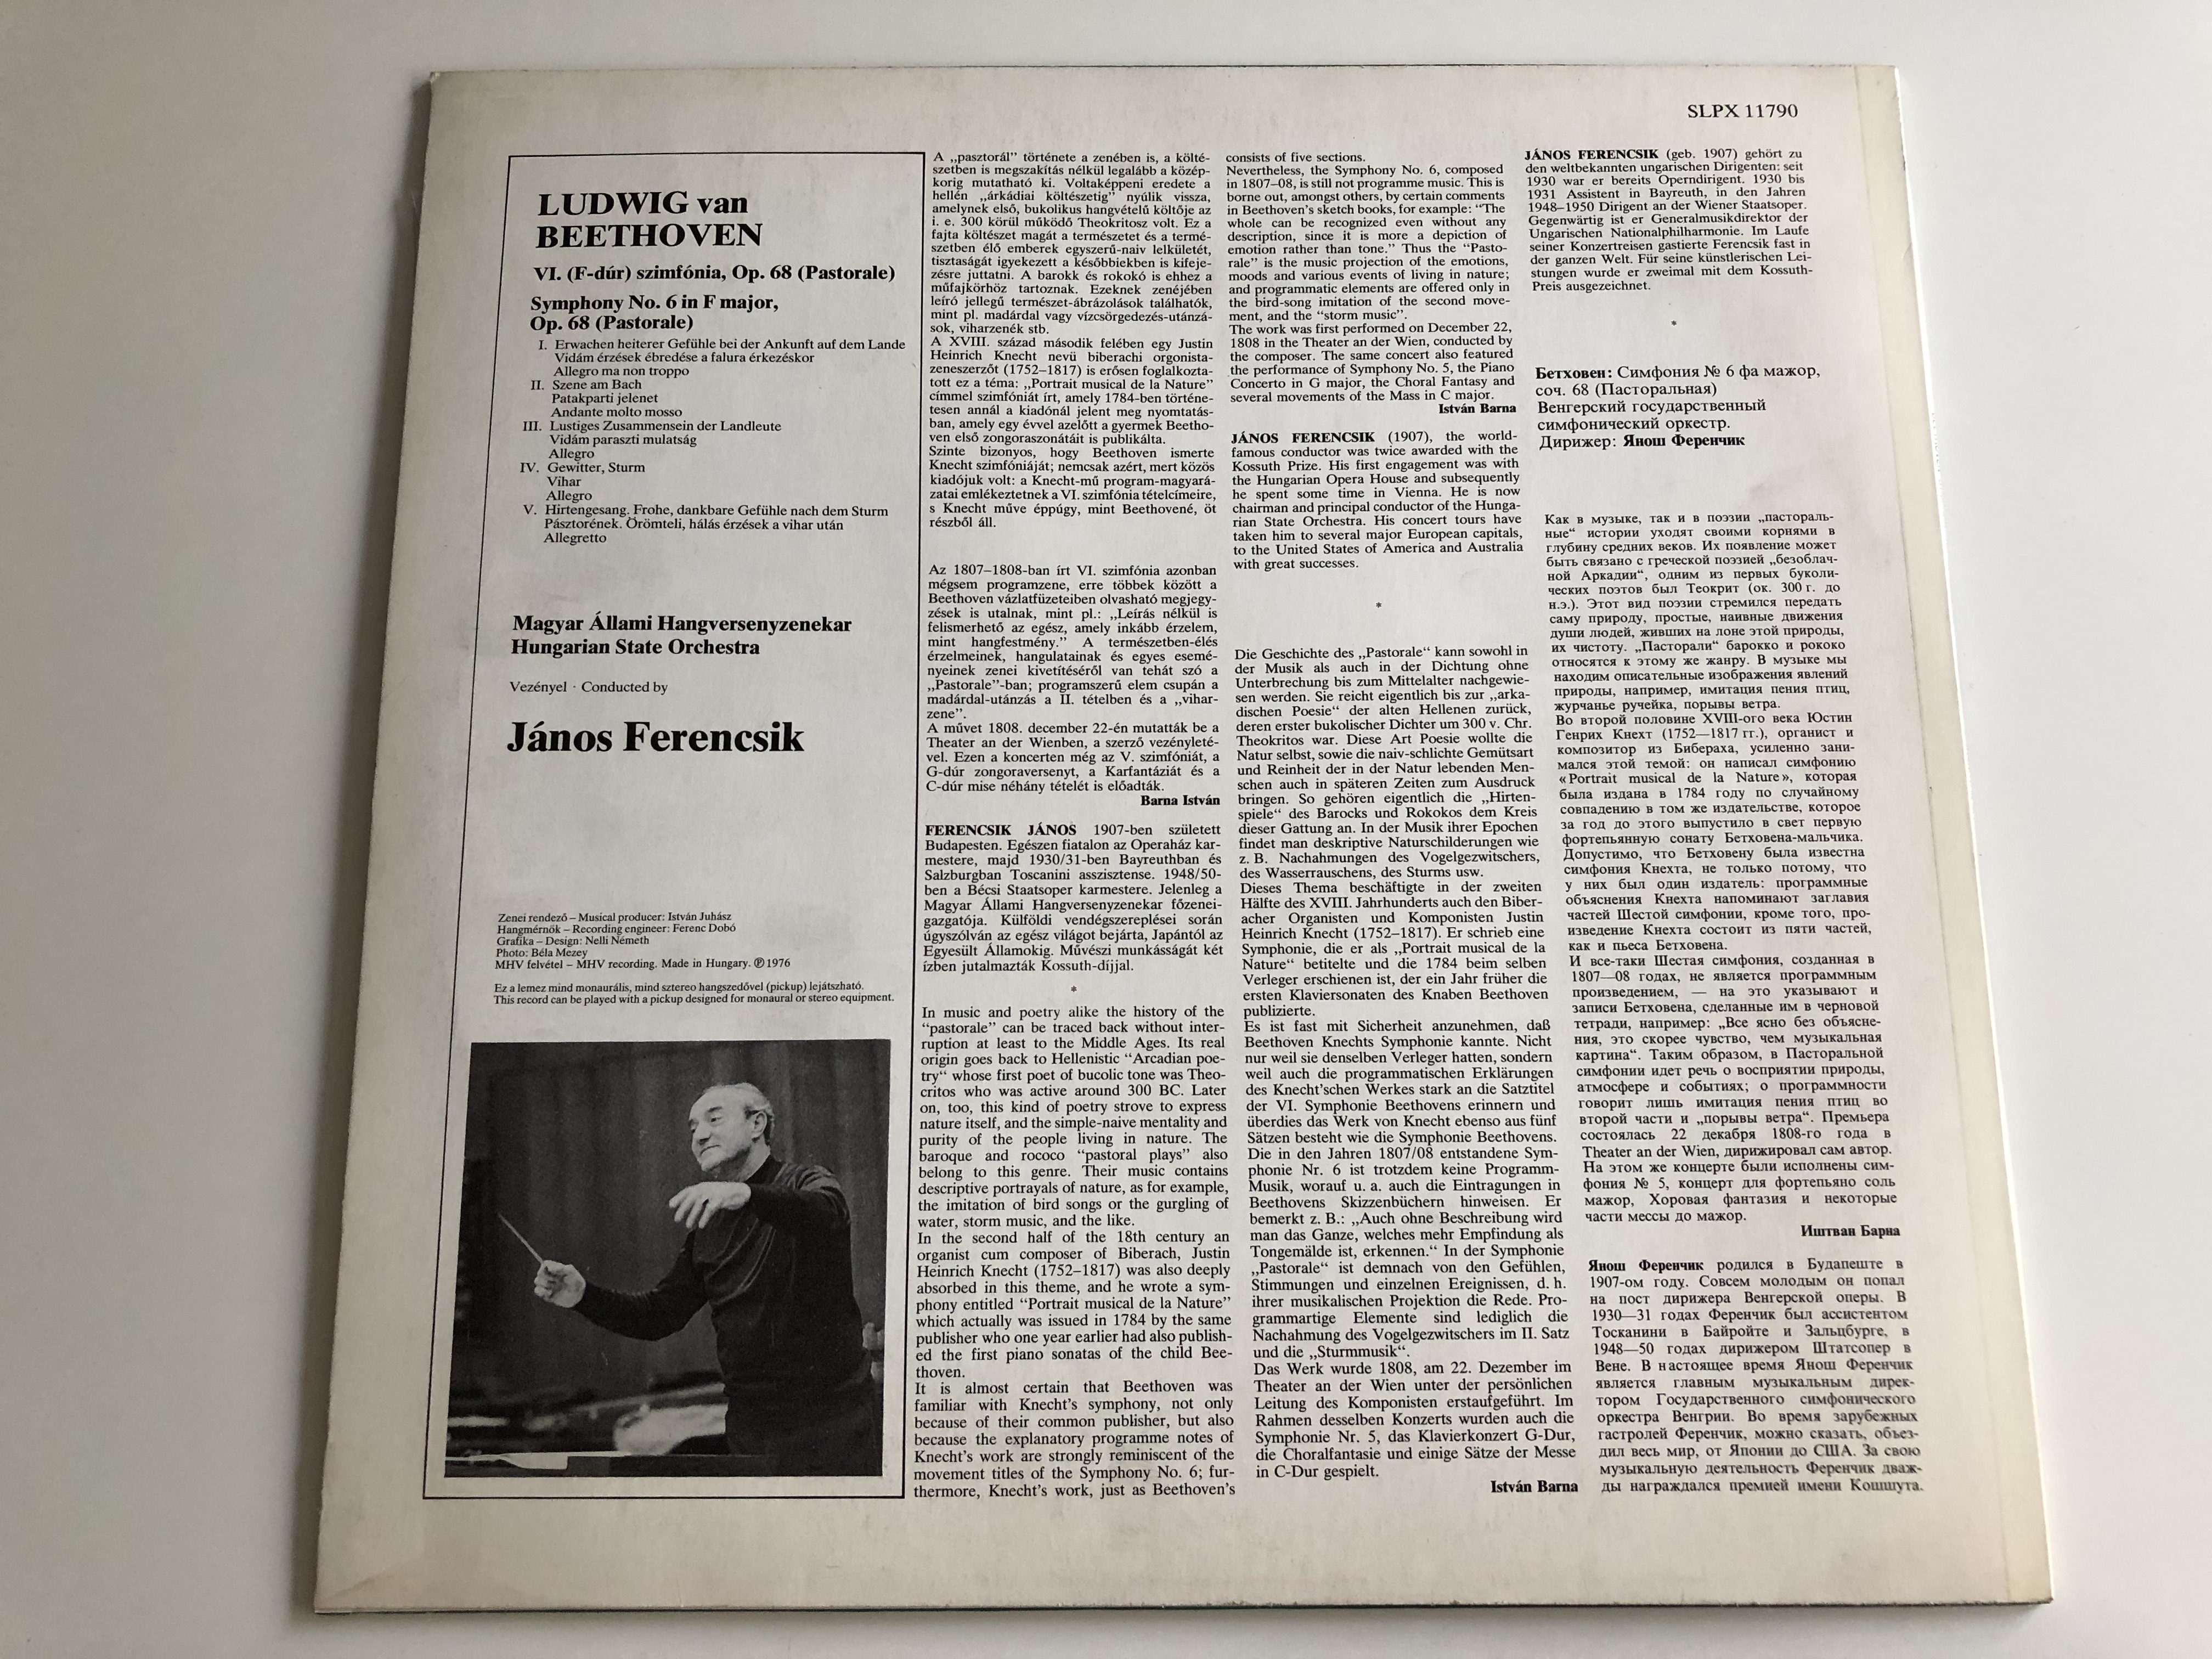 beethoven-symphony-no.-6-hungarian-state-orchestra-conducted-j-nos-ferencsik-hungaroton-lp-stereo-mono-slpx-11790-2-.jpg